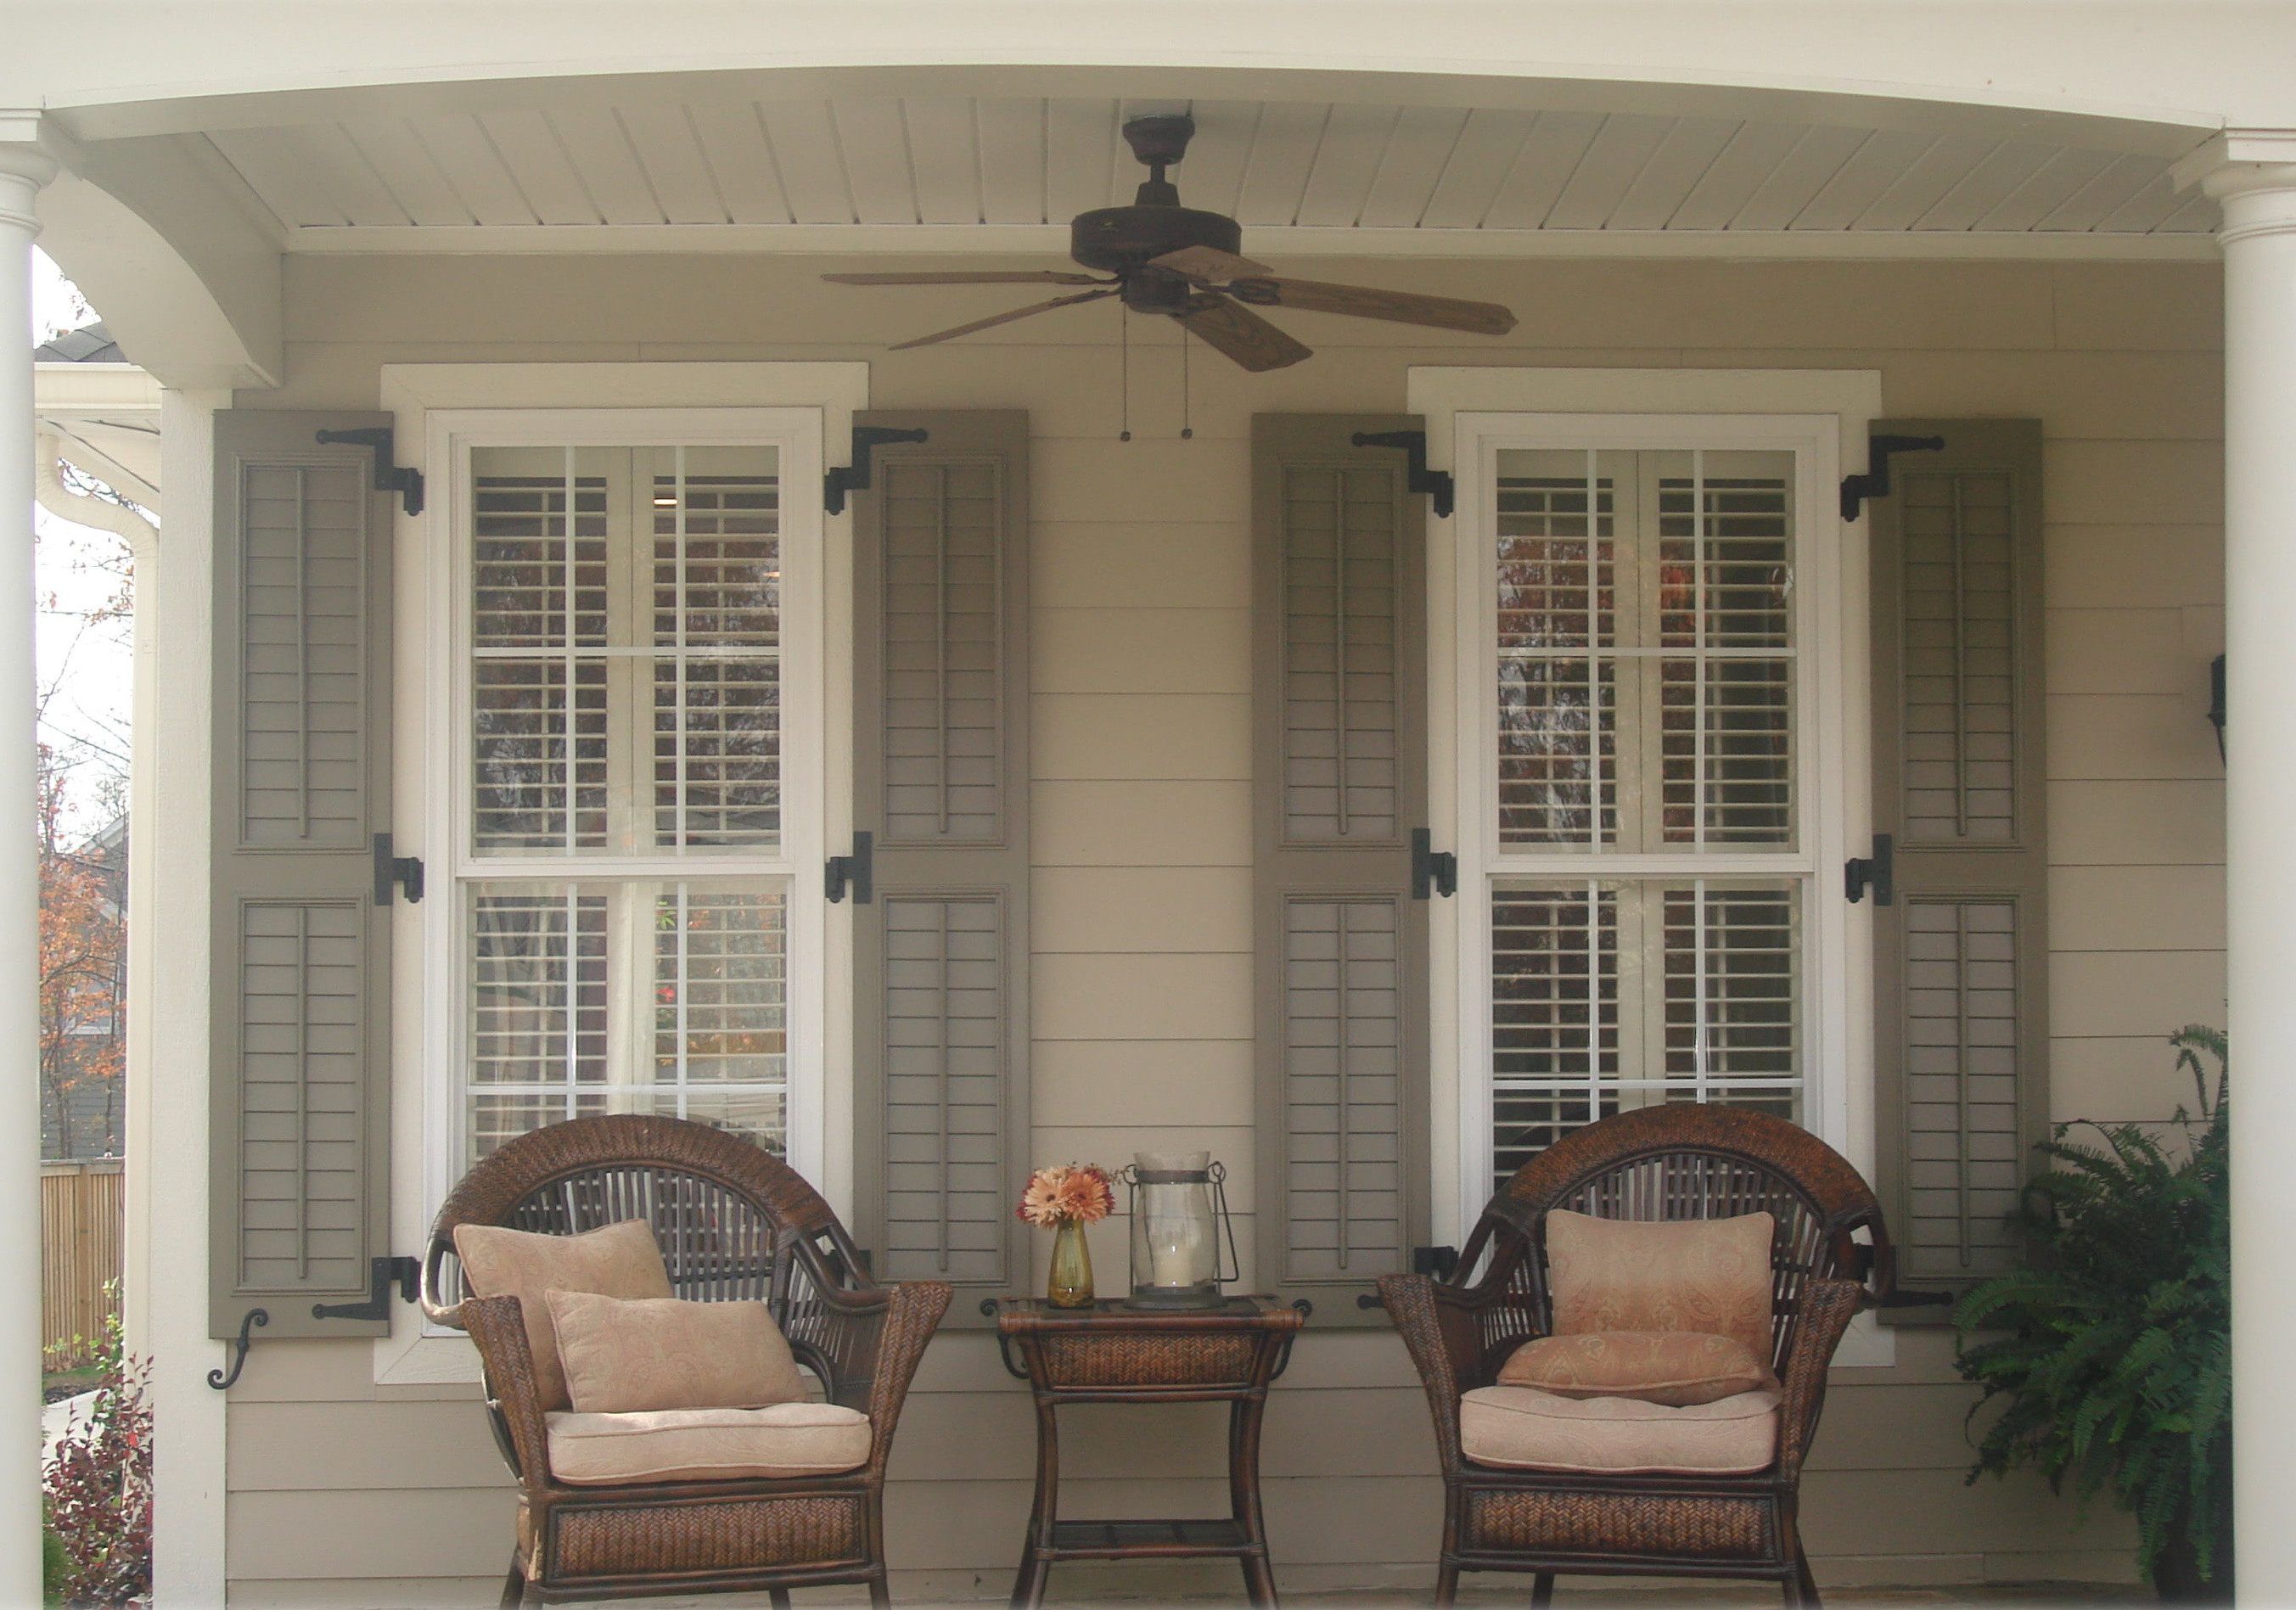 Stylish window shutters for window treatment ideas - Pictures of exterior shutters on homes ...